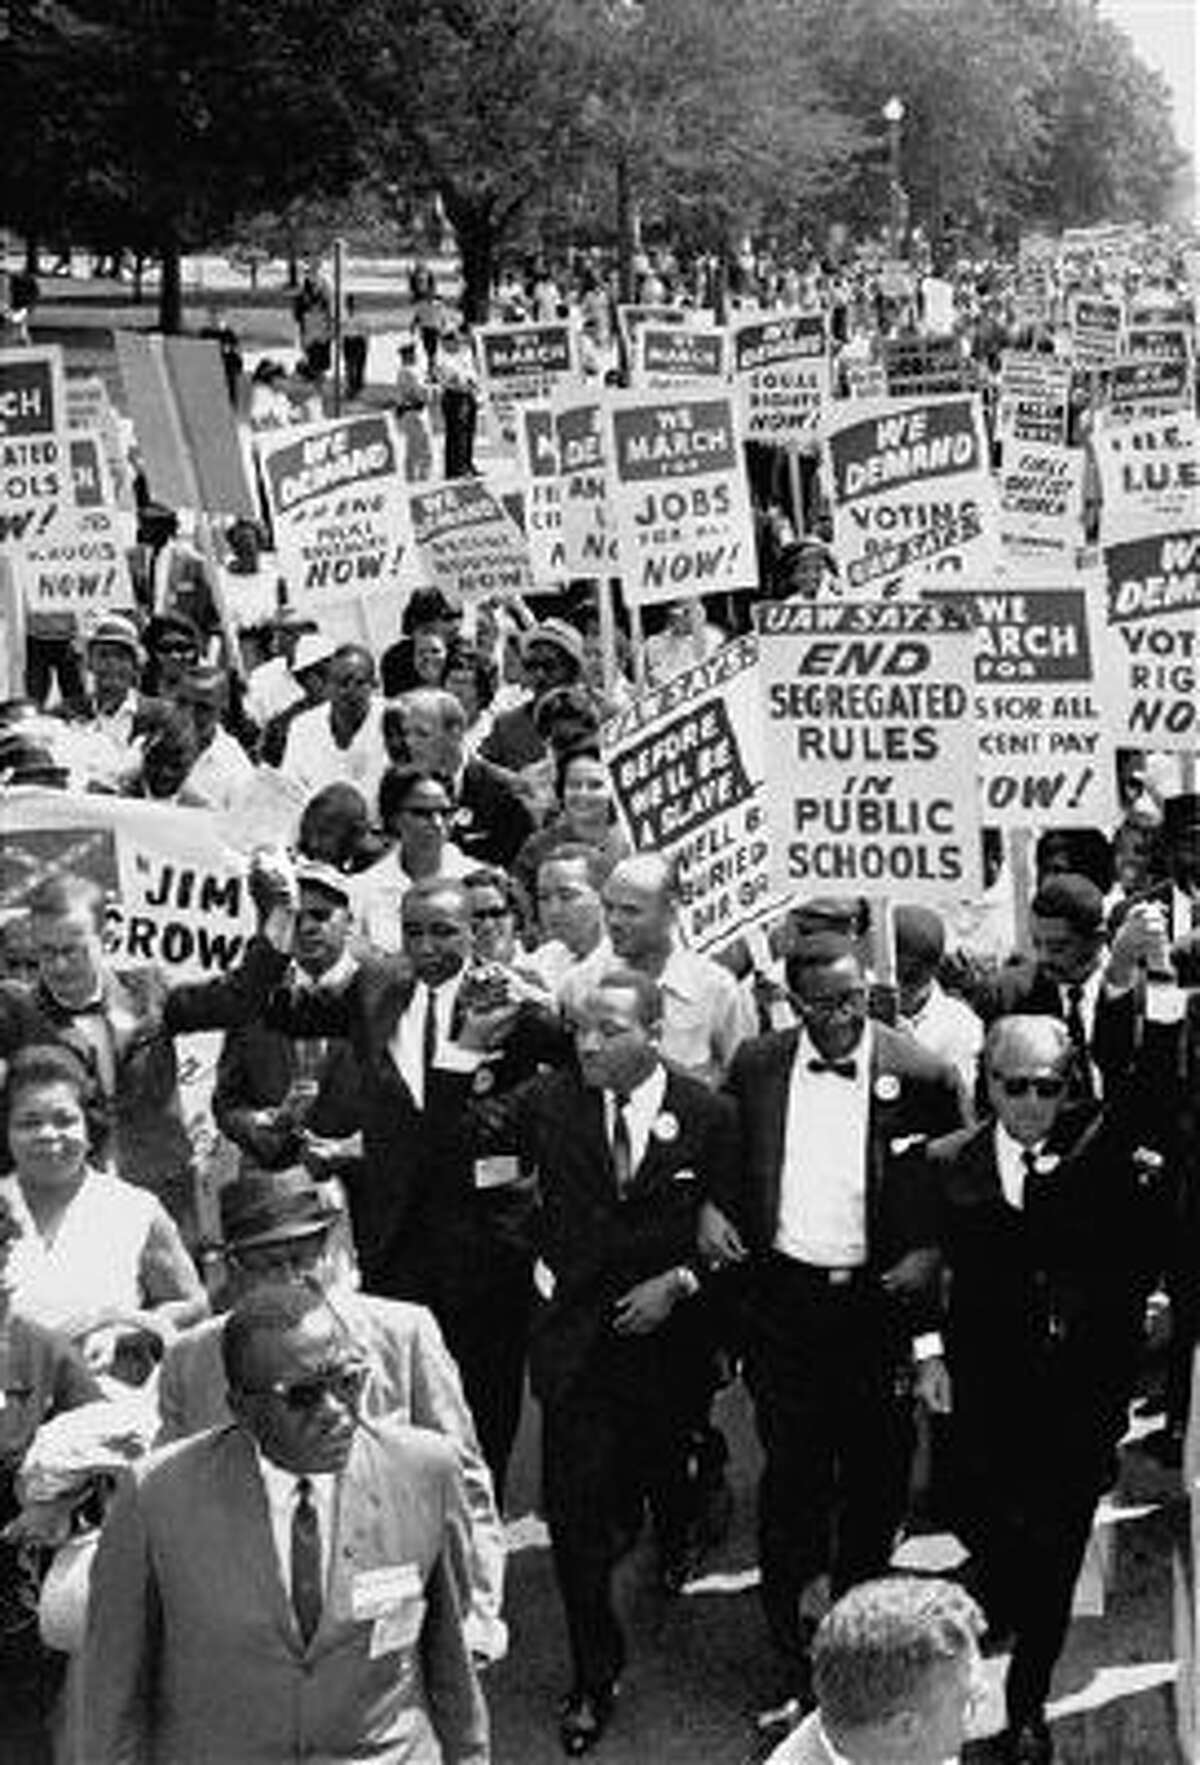 Martin Luther King, Jr., center front, marches for civil rights, arms linked in a line of men, in the Aug. 28, 1963, March on Washington.